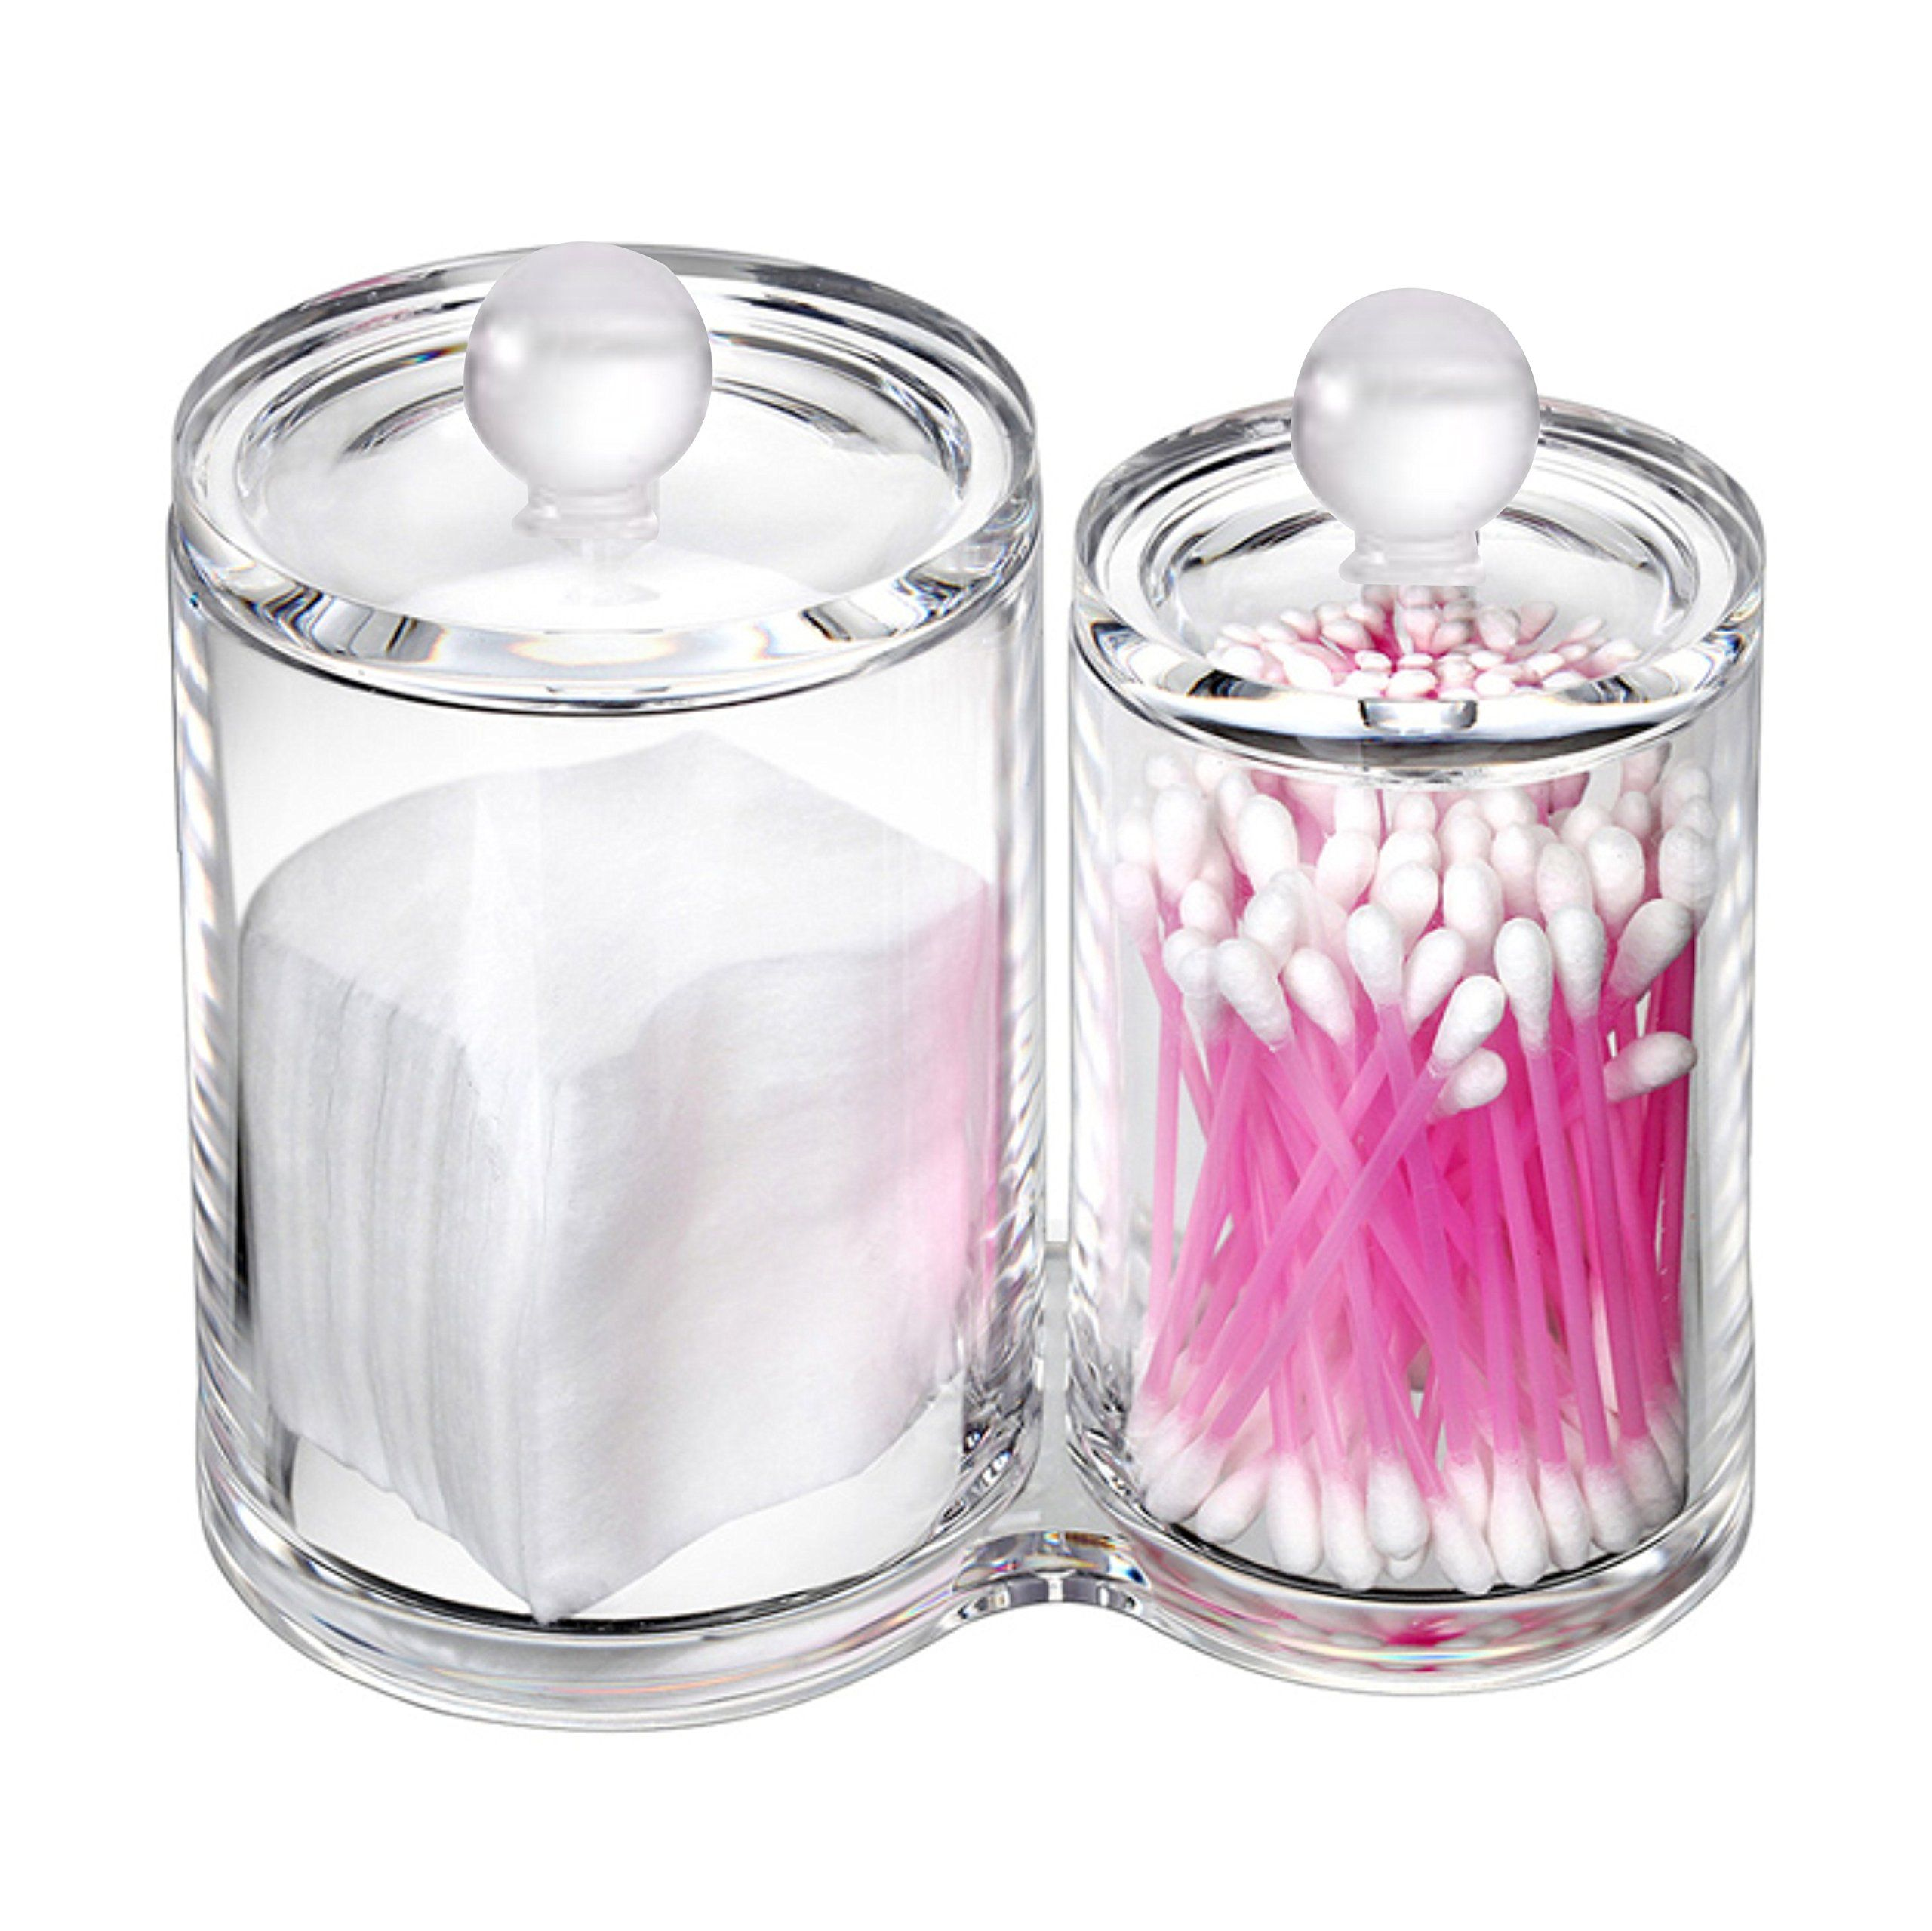 Cq acrylic Multifunctional Home Decor for Cotton Swabs Organizer and Cotton Balls Storage,5.4 x3.1x 5.1,Pack of 1